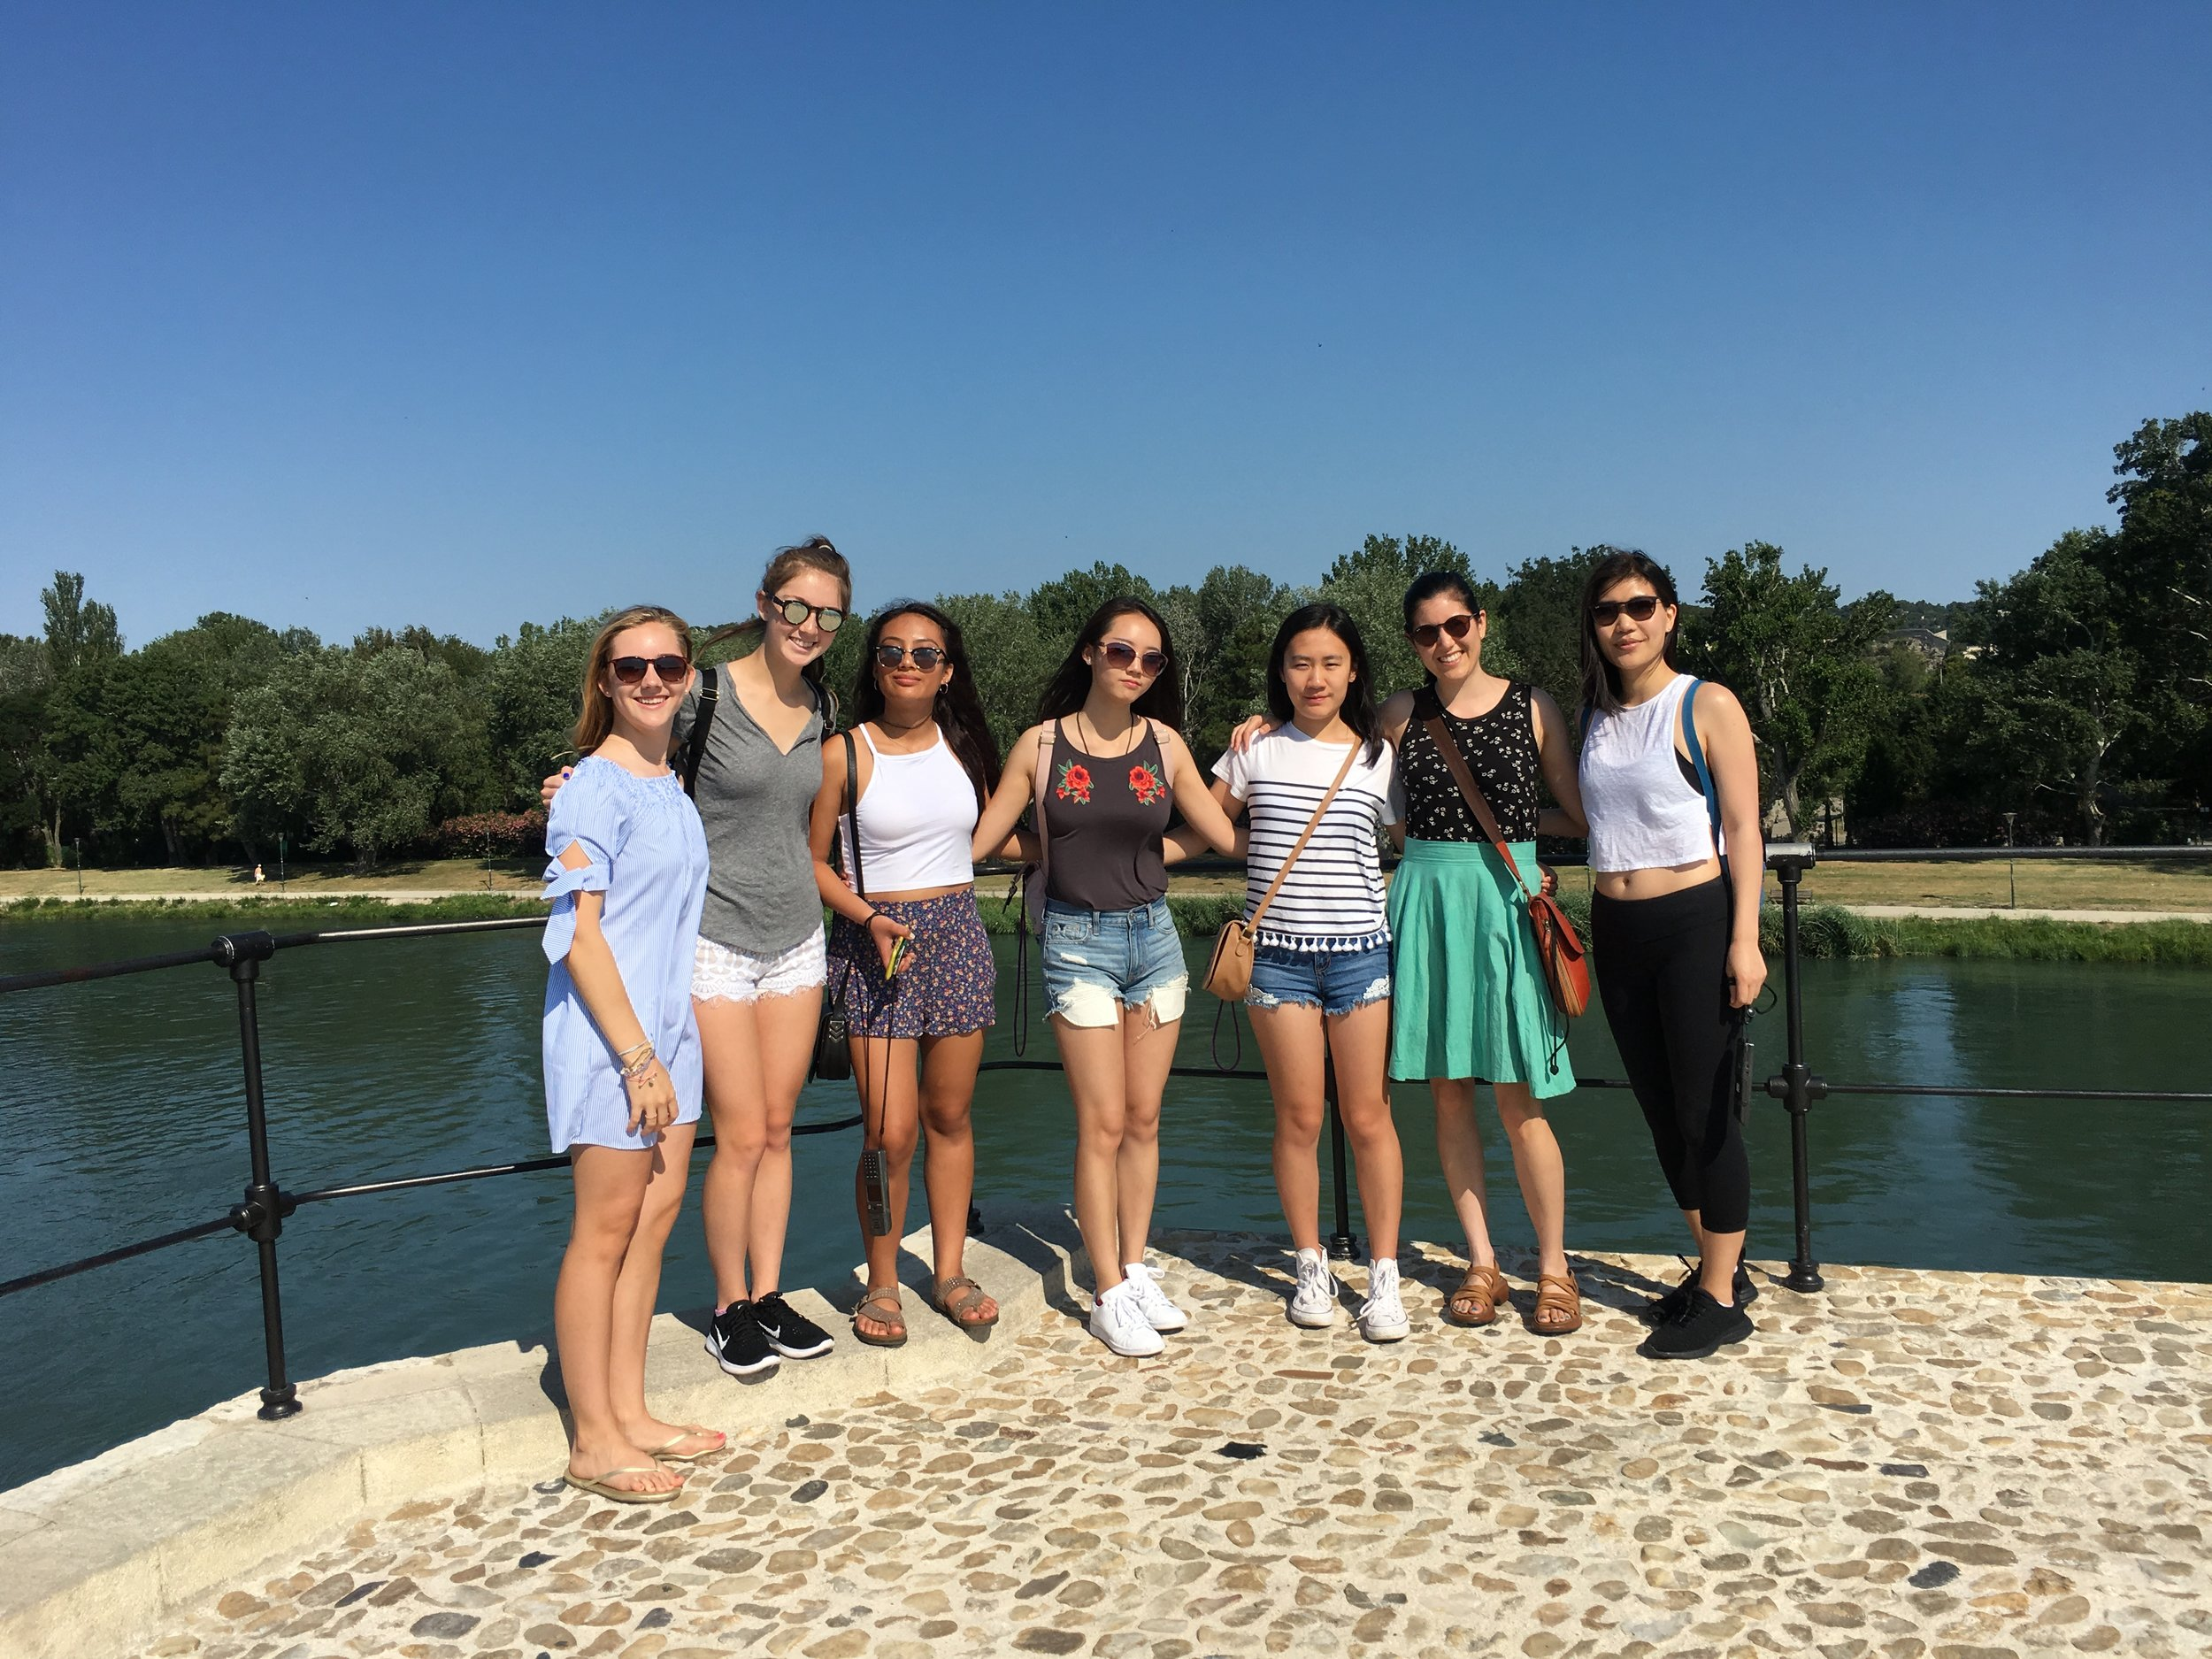 On the famous Pont d'Avignon, right after we sang and danced.